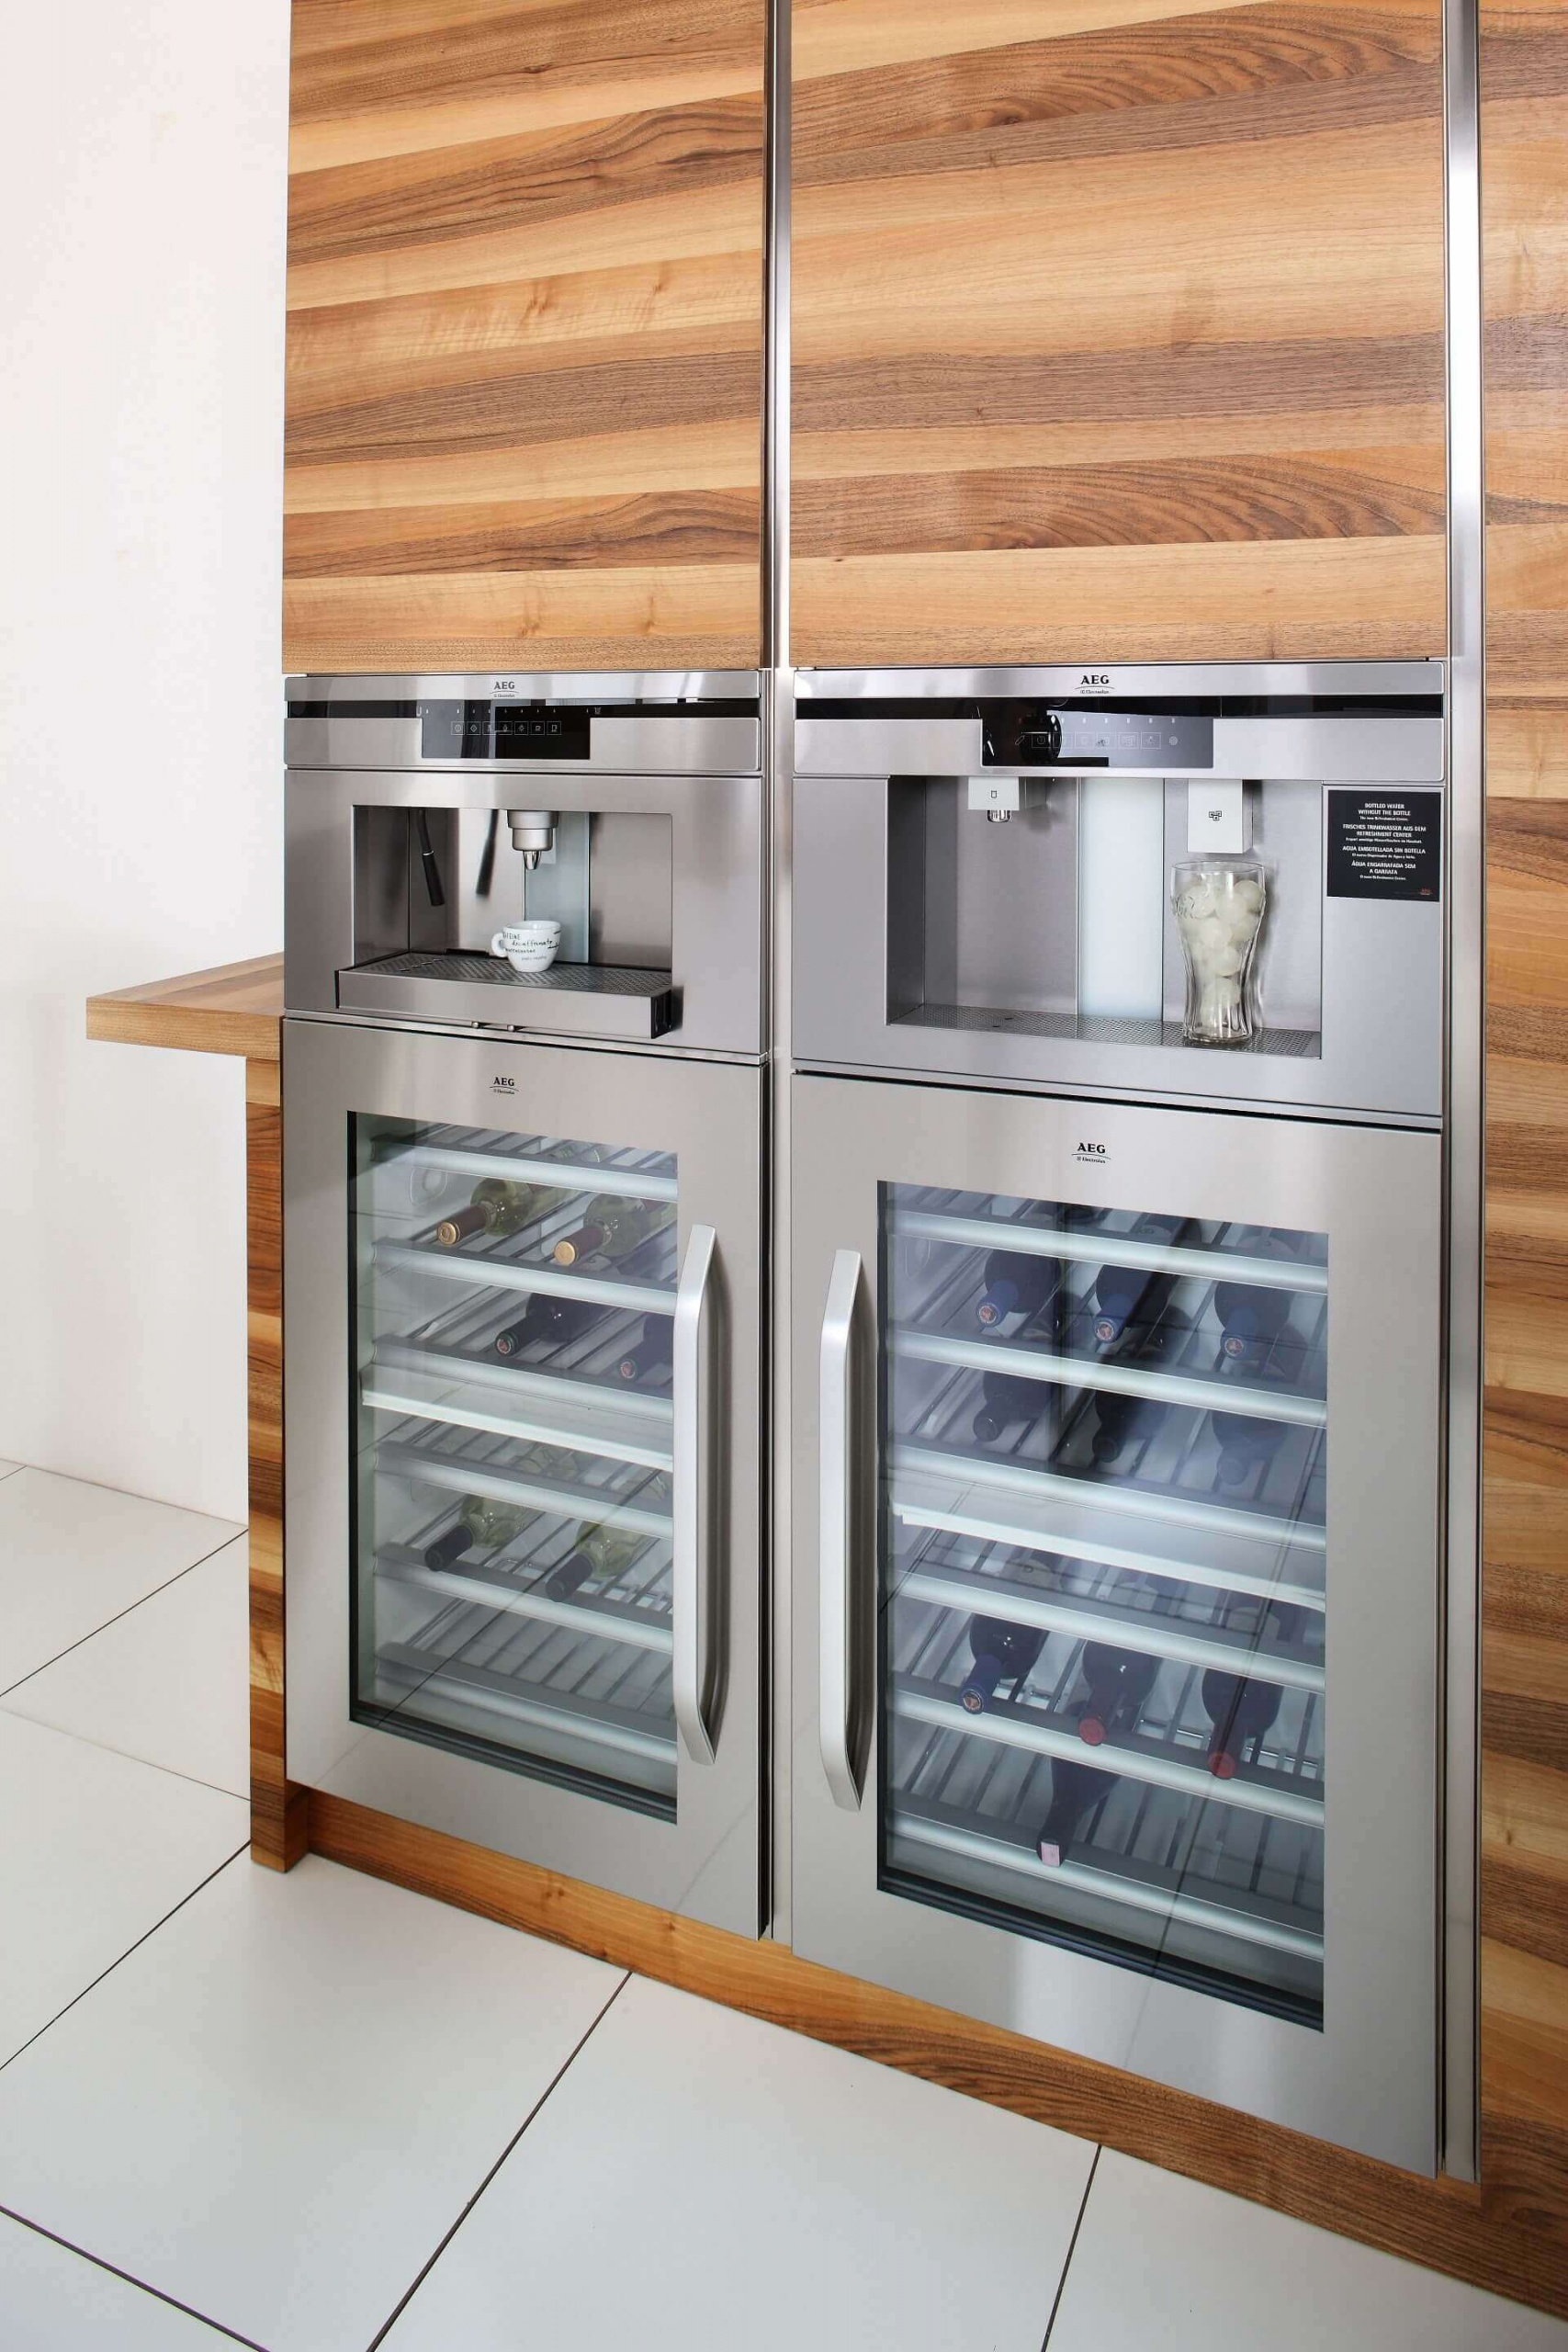 Arca Cucine Italy - Domestic stainless steel kitchens - Open - Arca_513